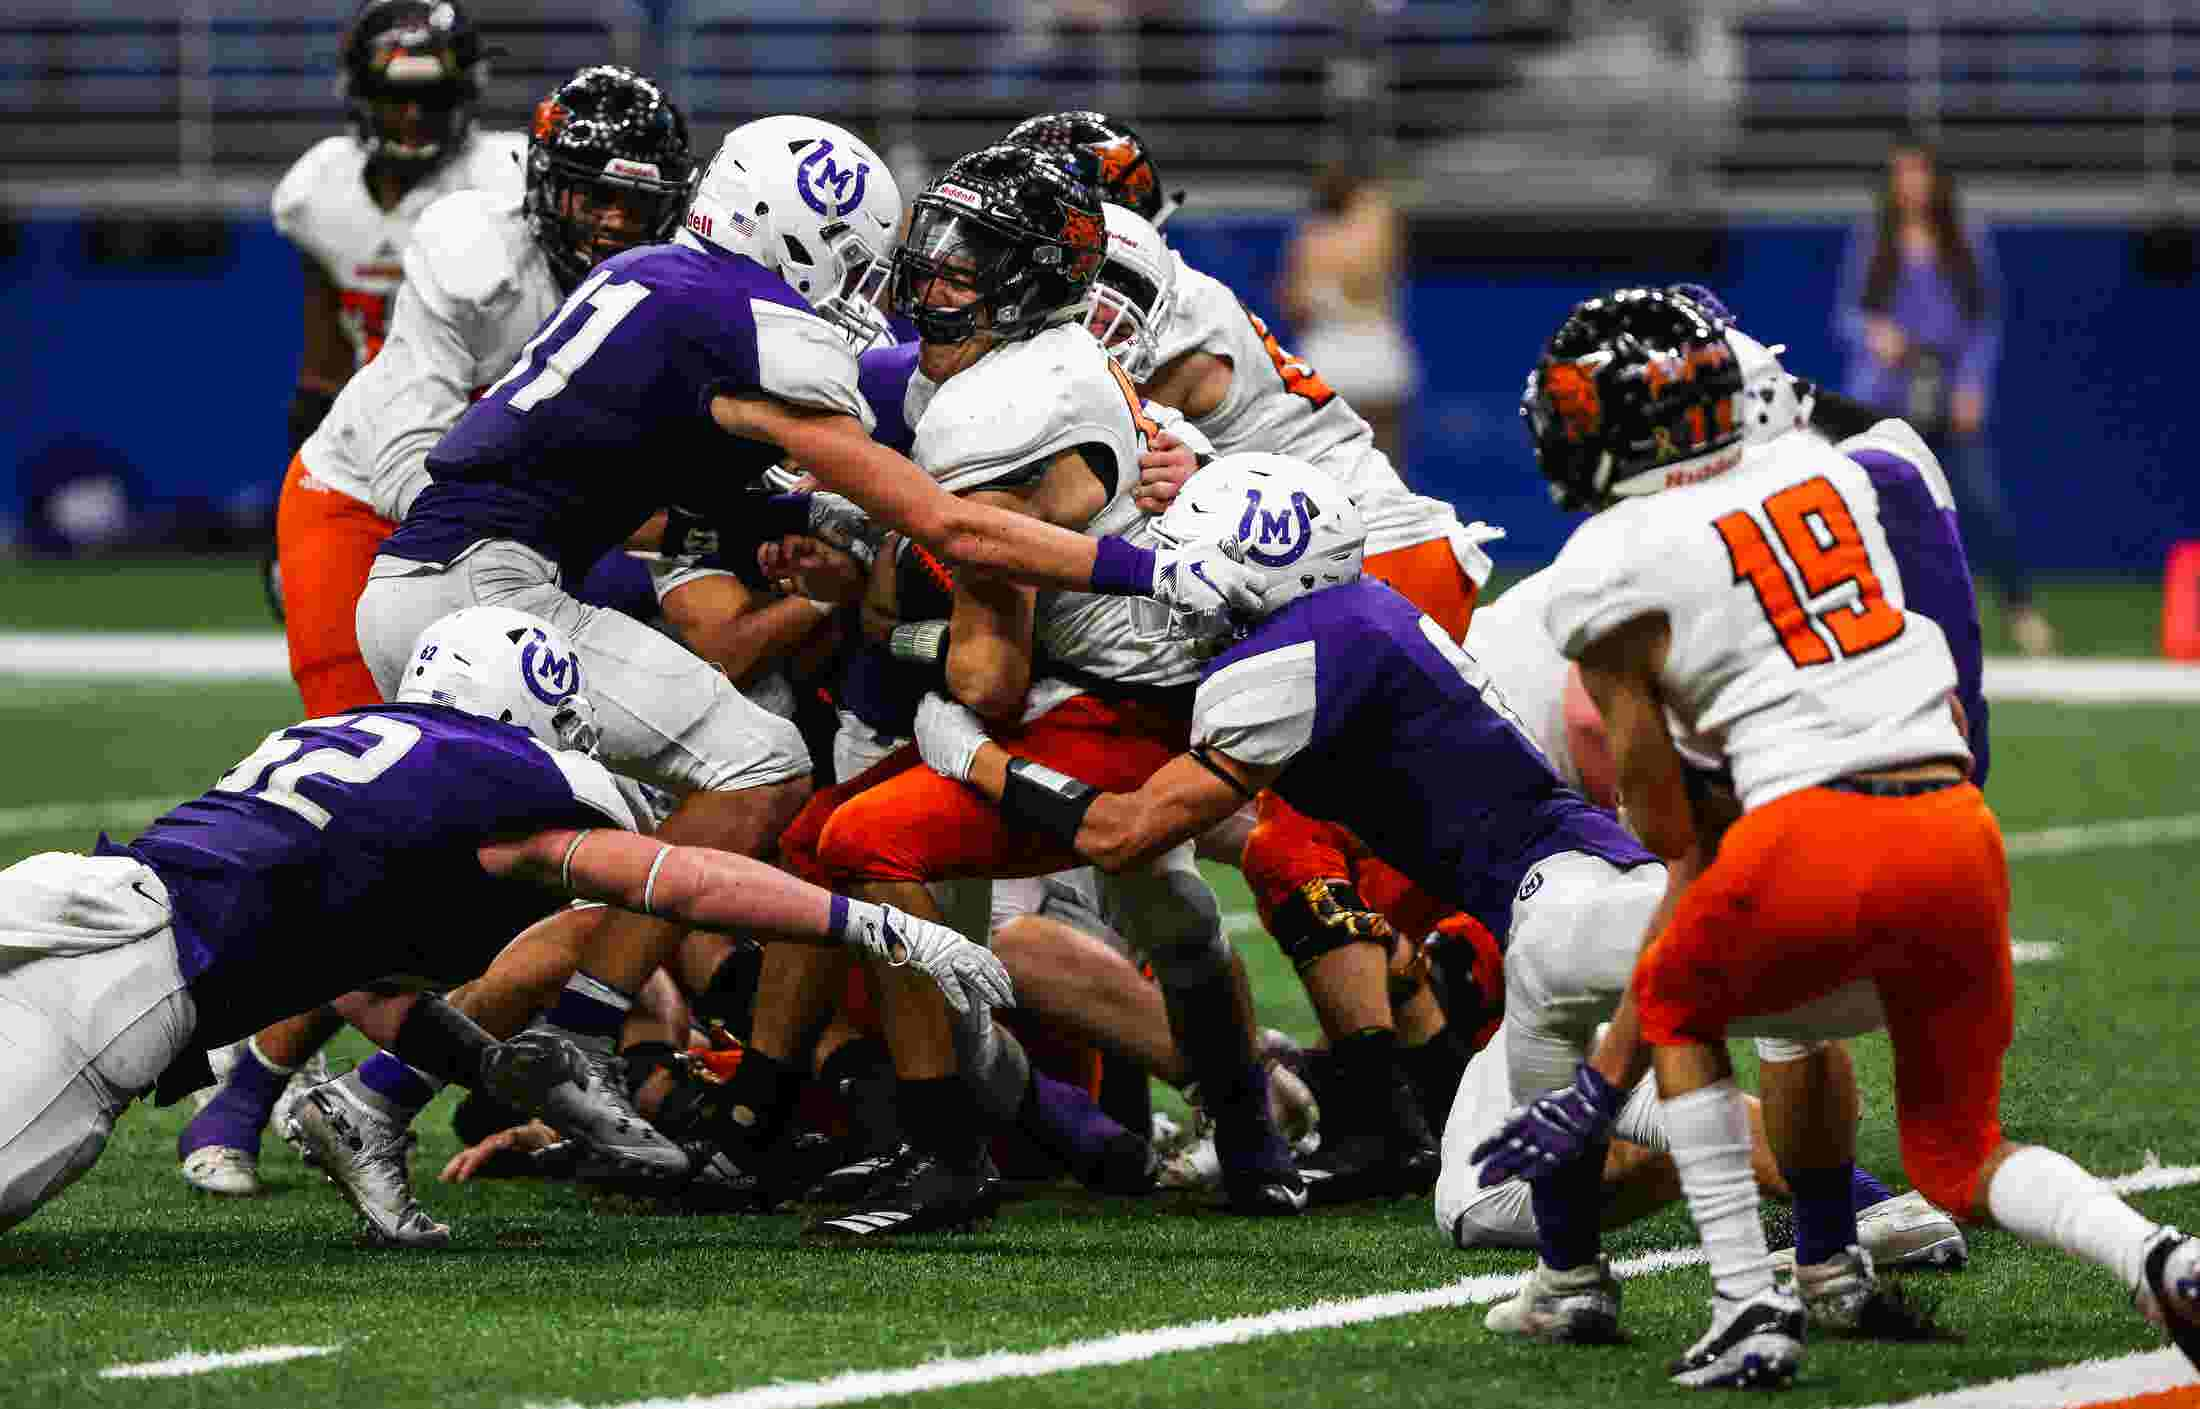 f169792e9 Texas High School Football Playoffs 2018  Statewide Schedule and scores